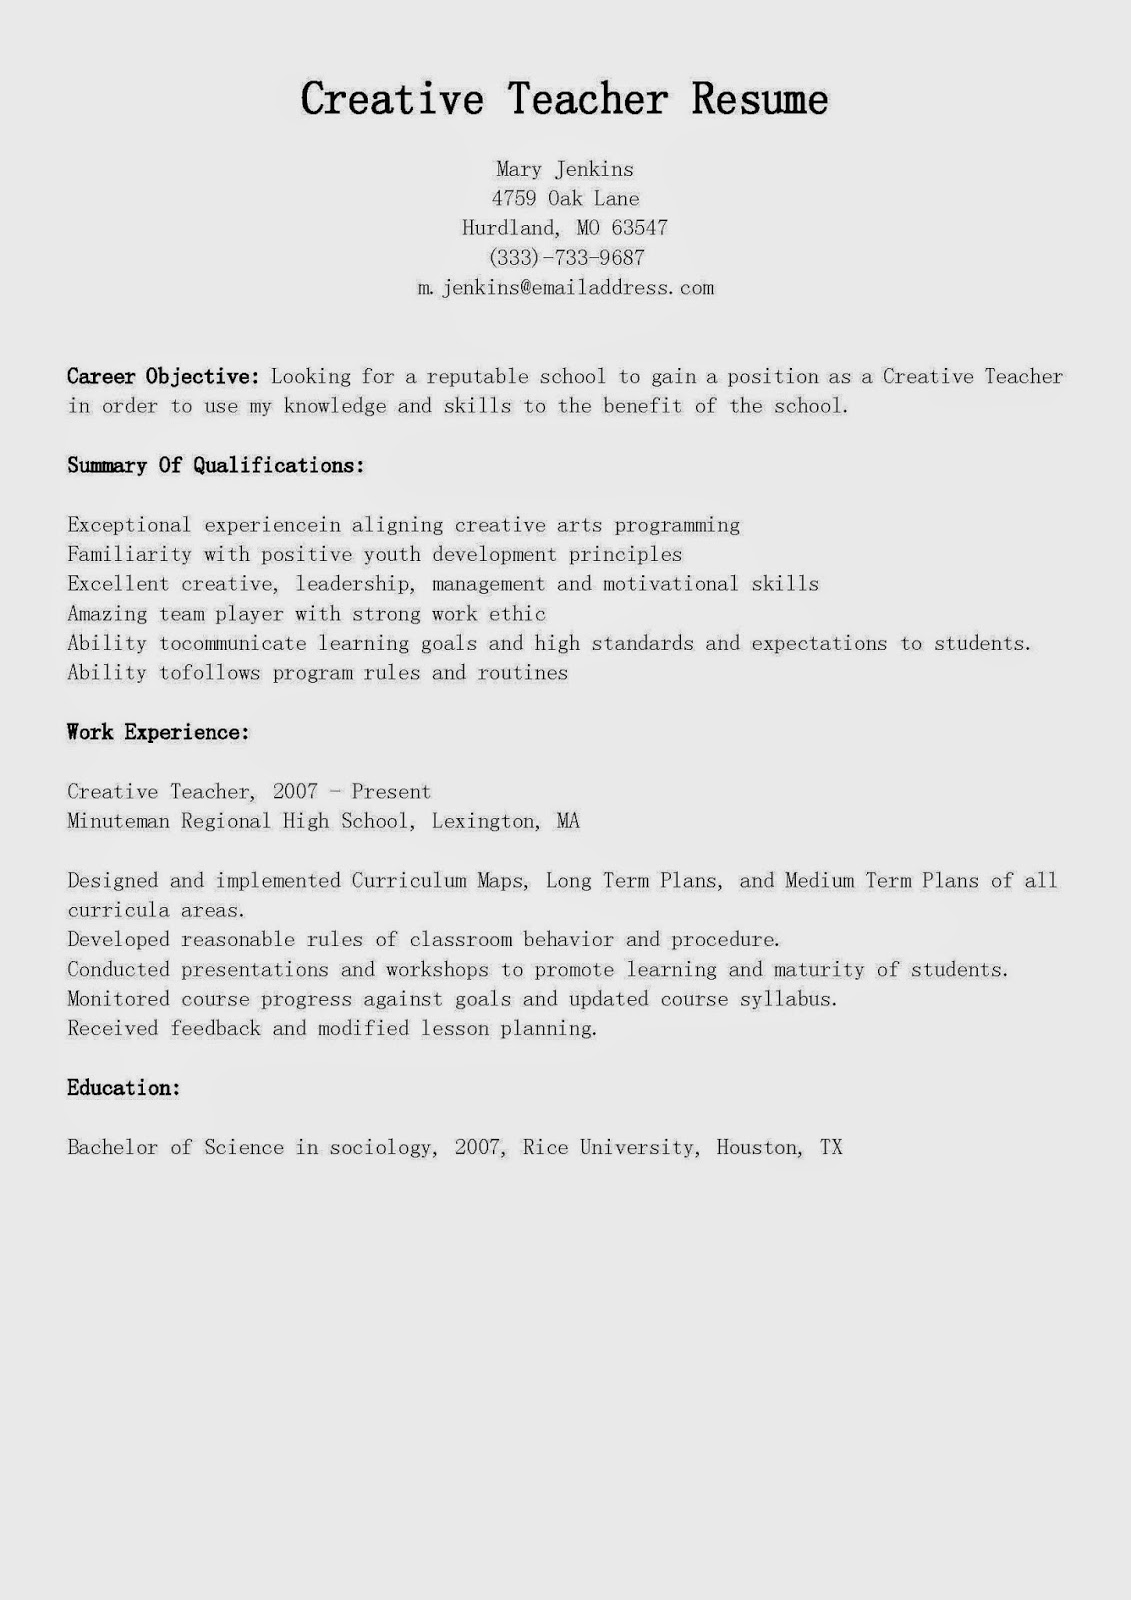 How Long Should A Teacher Resume Be Resume Samples Creative Teacher Resume Sample